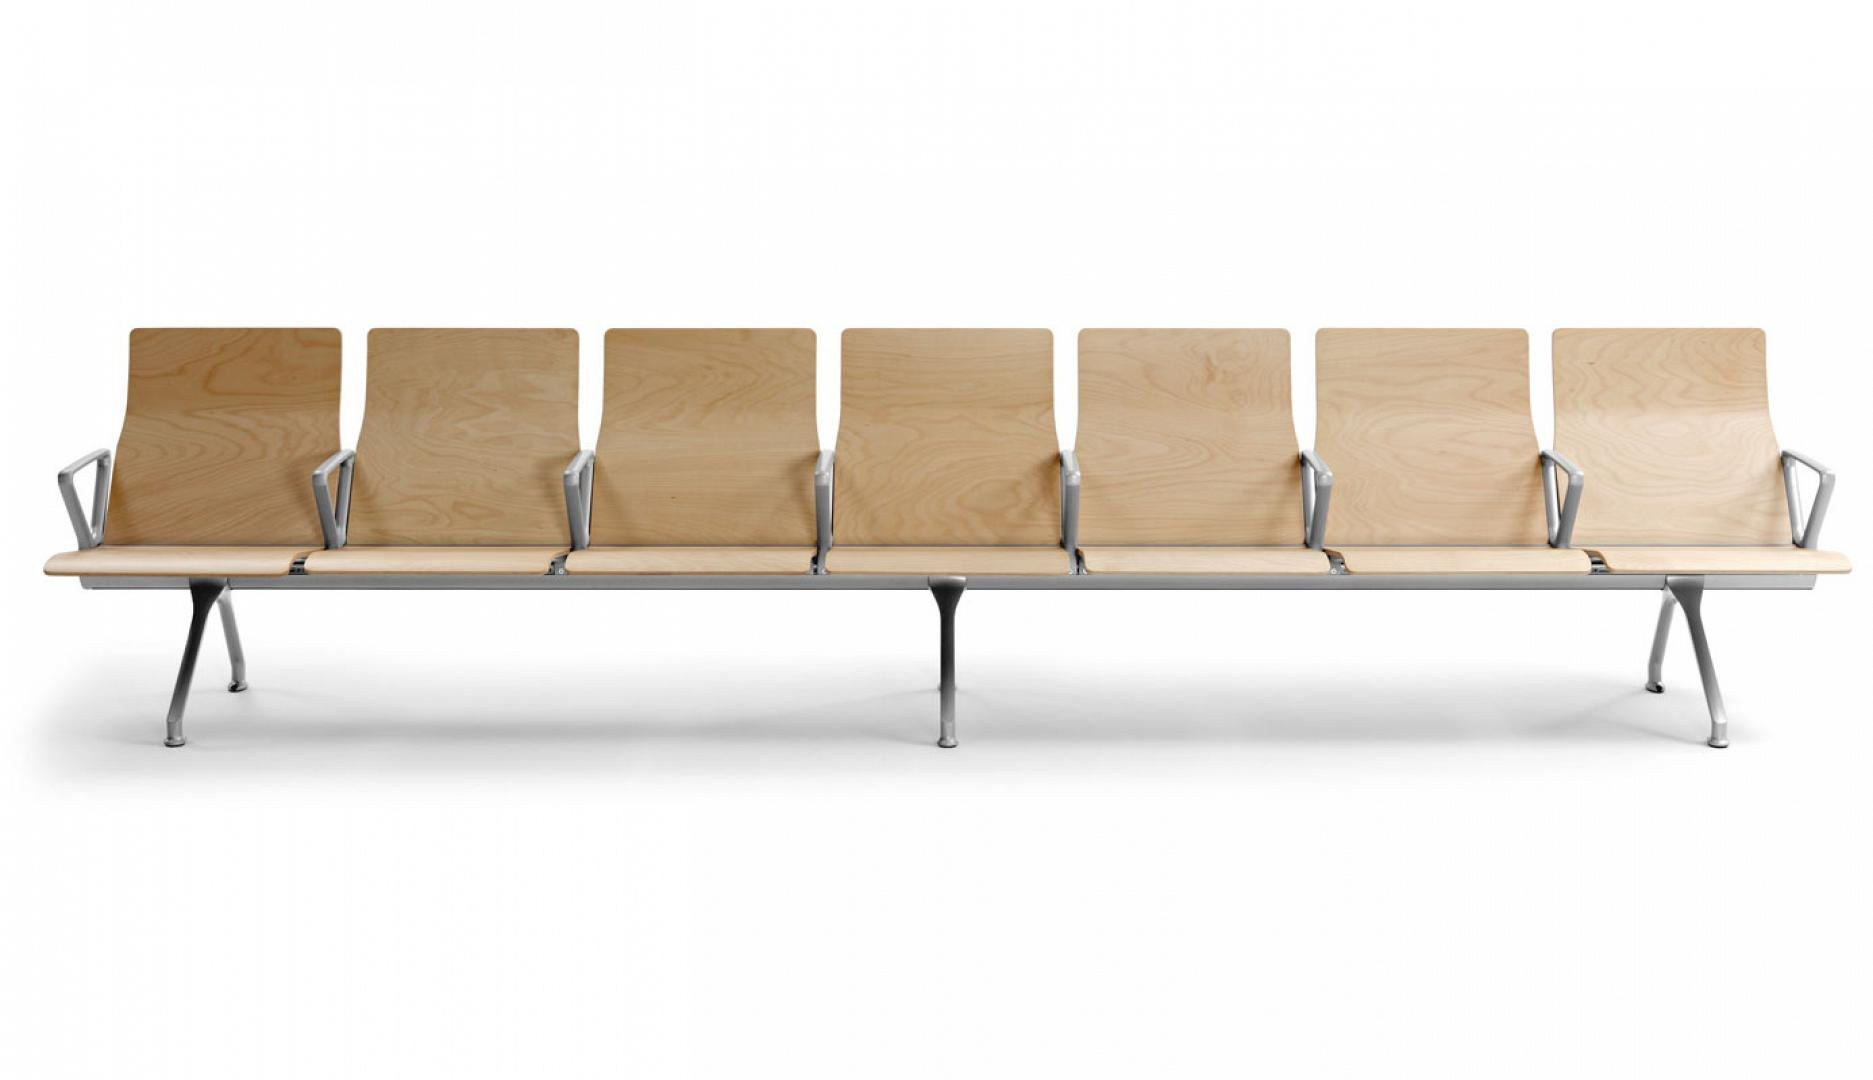 ecodesign durability avant actiu furniture bench